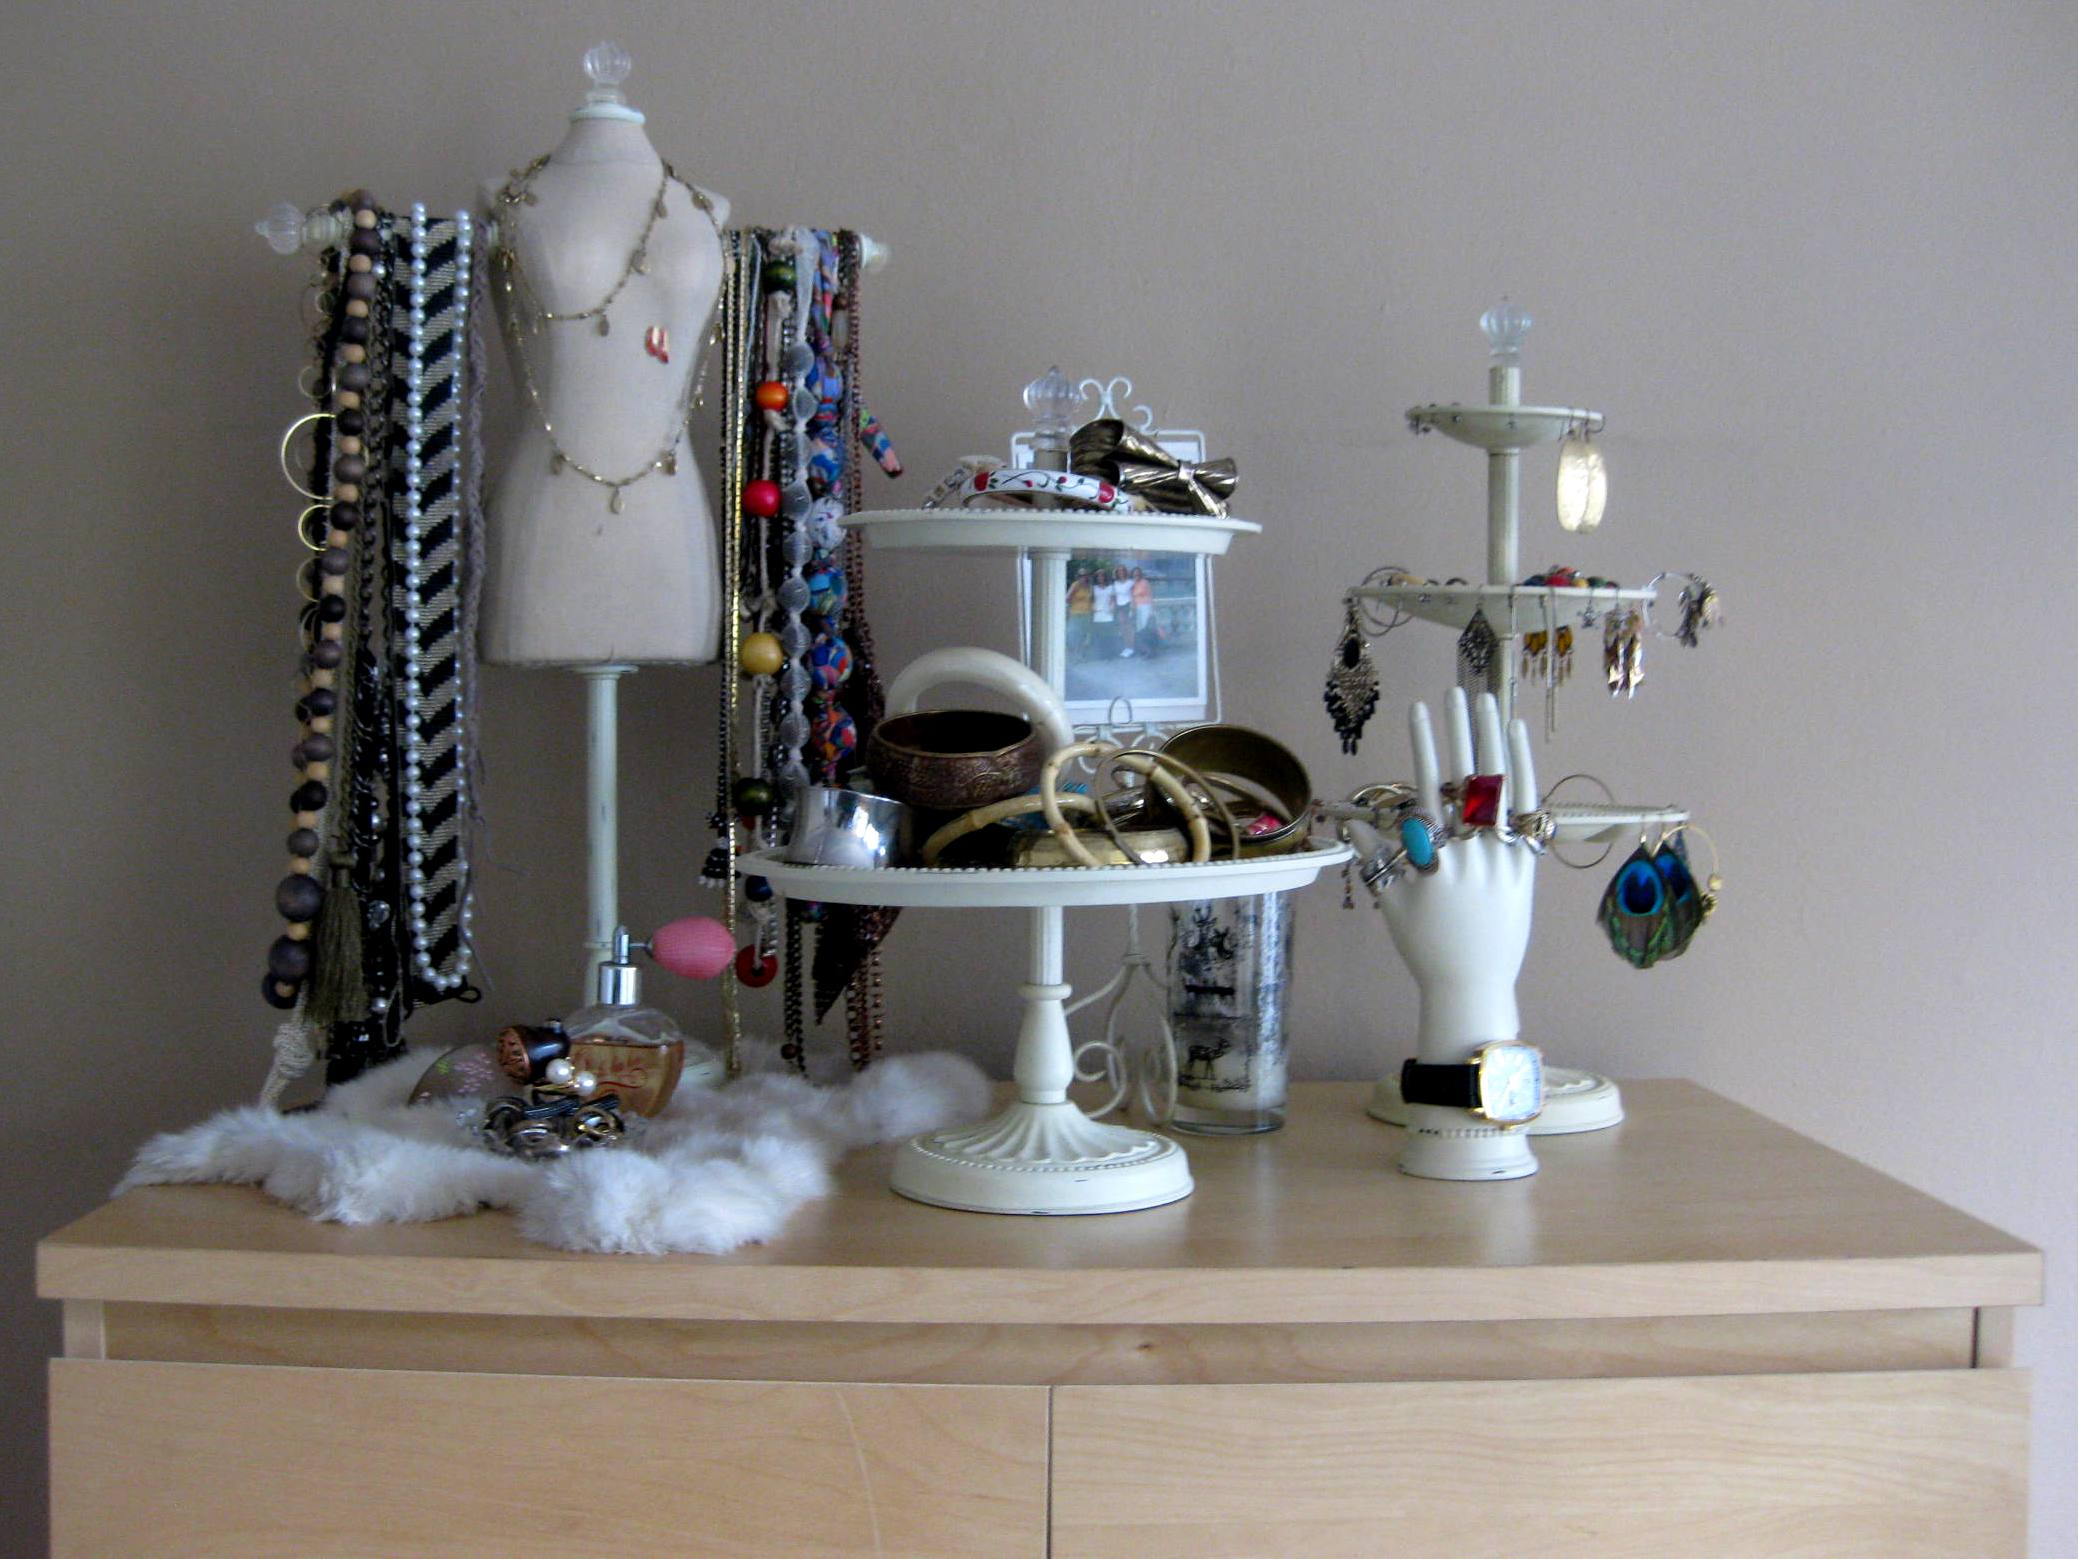 Merchandising my shelves with these original jewelry display and storage pieces.